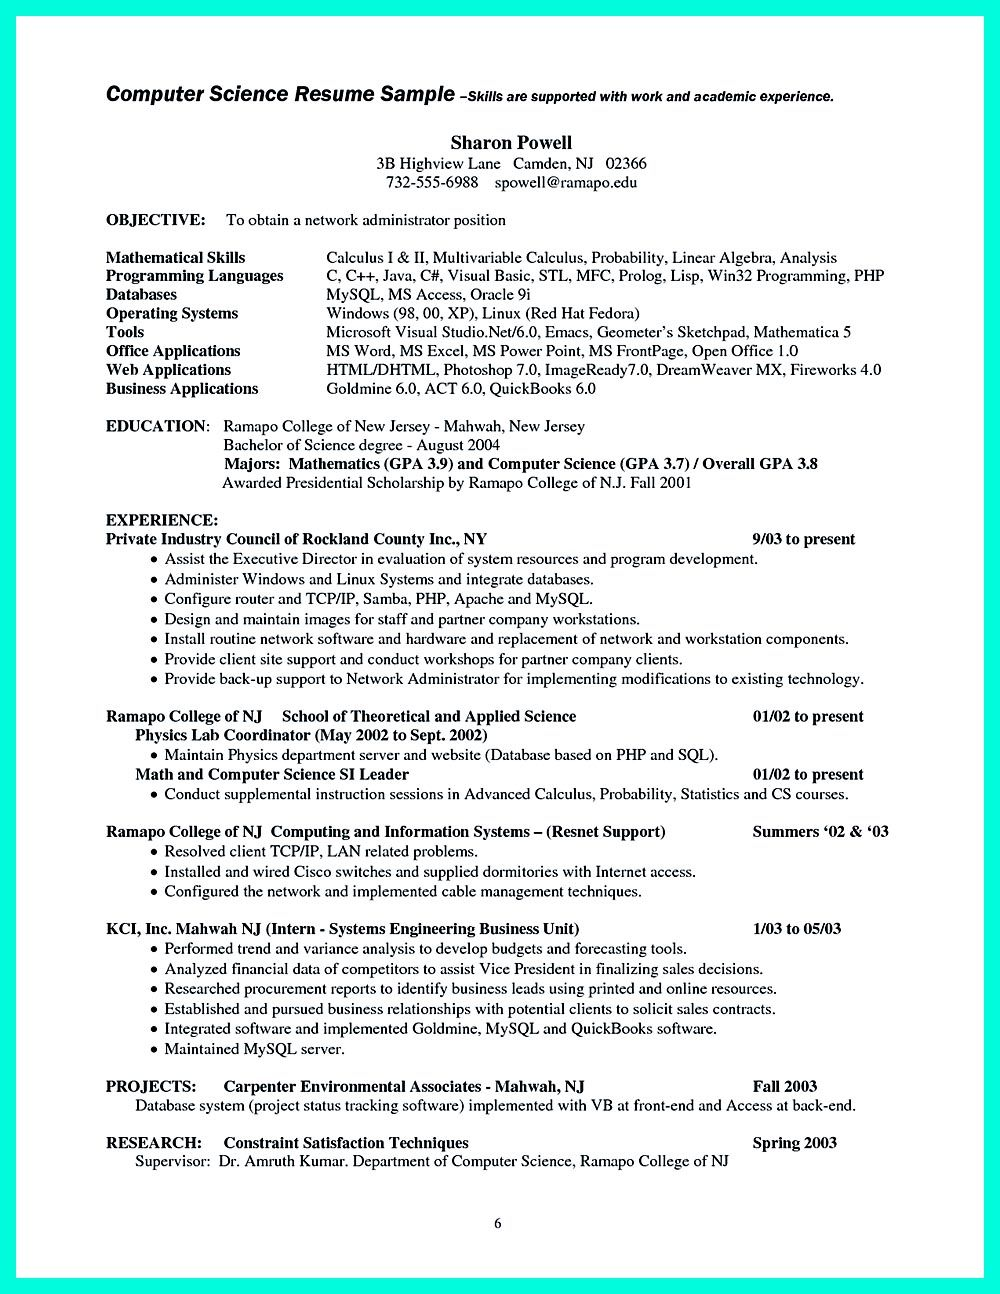 What you will include in the computer science resume depends on the ...